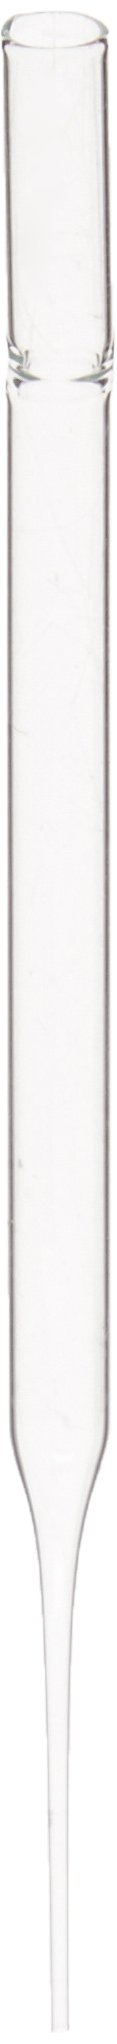 Corning 7095D-5X Borosilicate Glass Non-Sterile Disposable Pasteur Pipets, Unplugged, 5.75'' Length (Case of 1000)